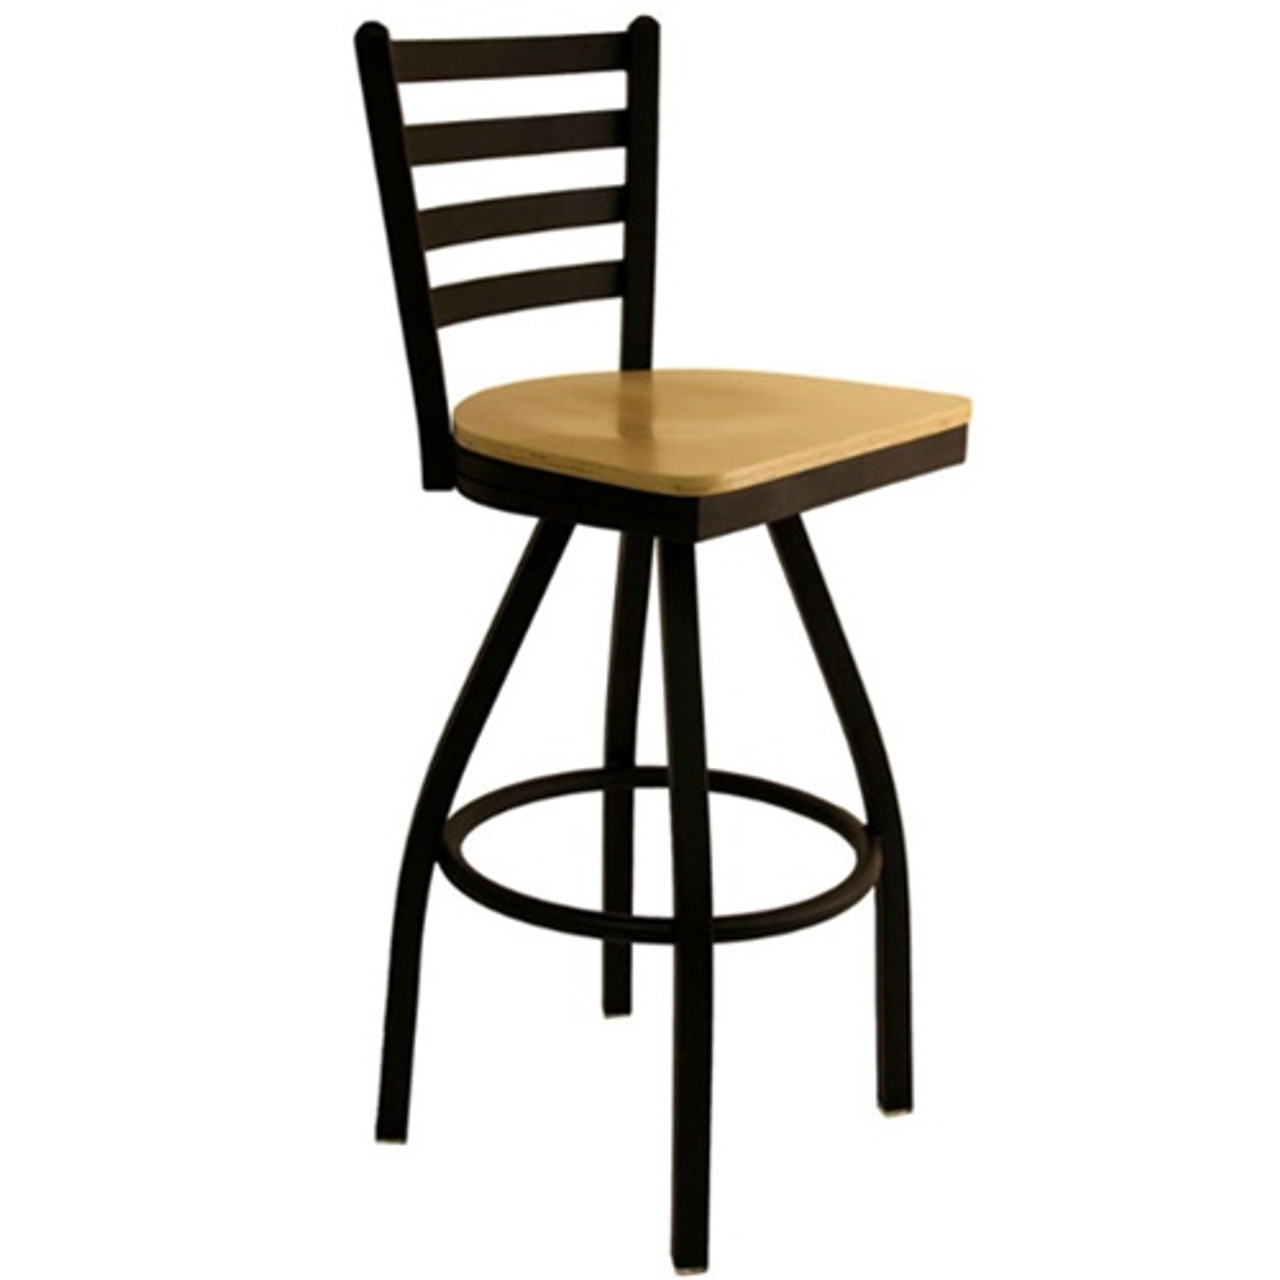 Wondrous Bfm Seating Lima Black Metal Ladder Back Restaurant Swivel Bar Stools 2160S Sbw Forskolin Free Trial Chair Design Images Forskolin Free Trialorg